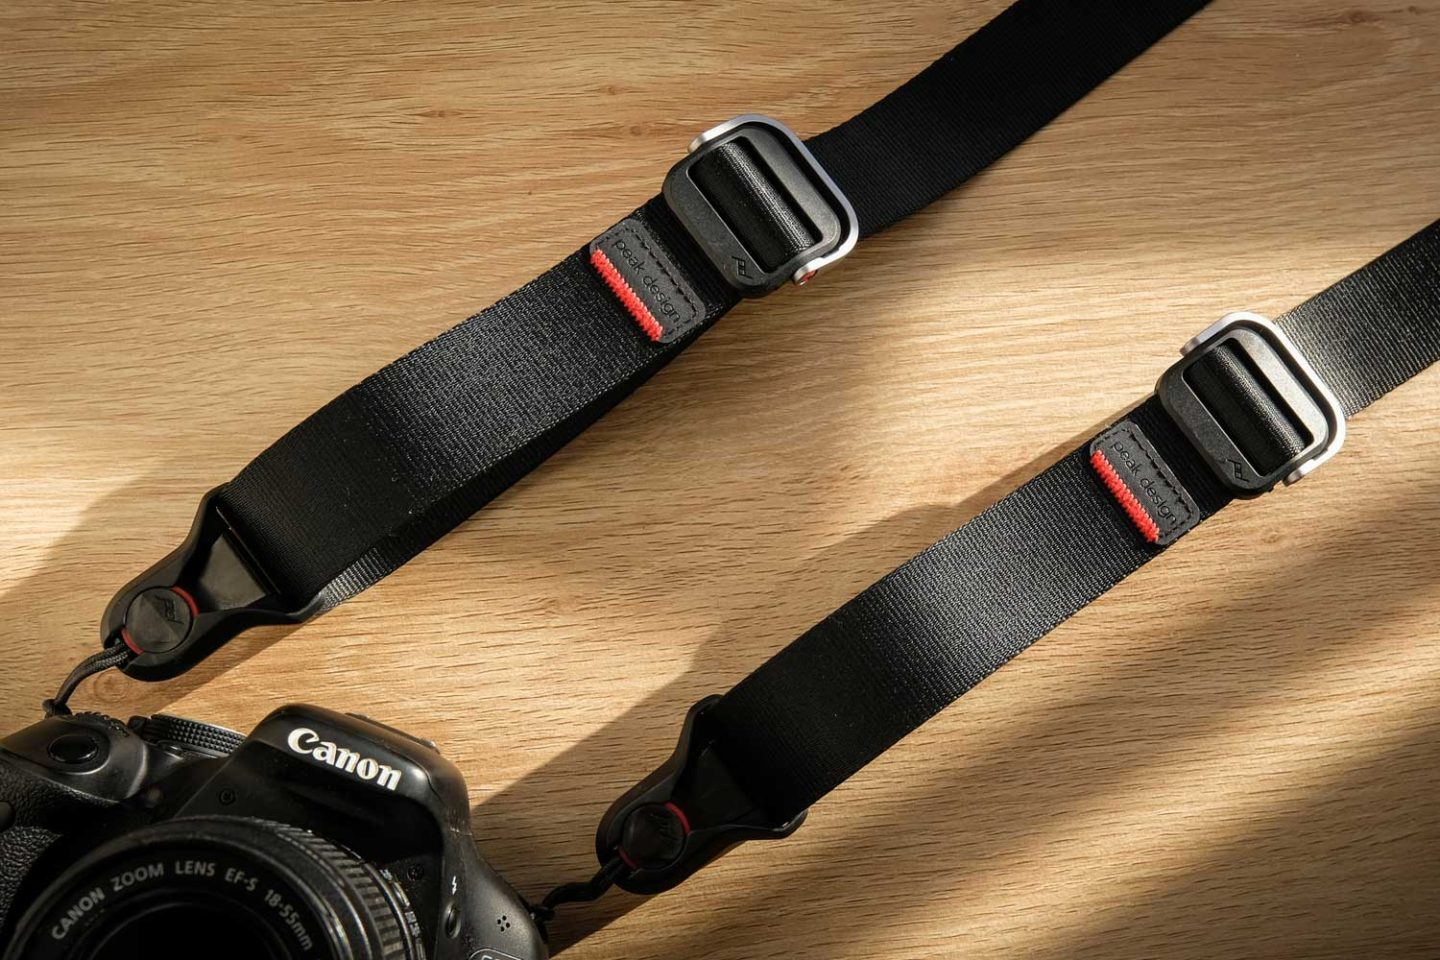 The Peak Design Slide Lite camera strap attached to a camera which is laid down on a desk. One of the must-have photography accessories you need to take with you next time you travel.